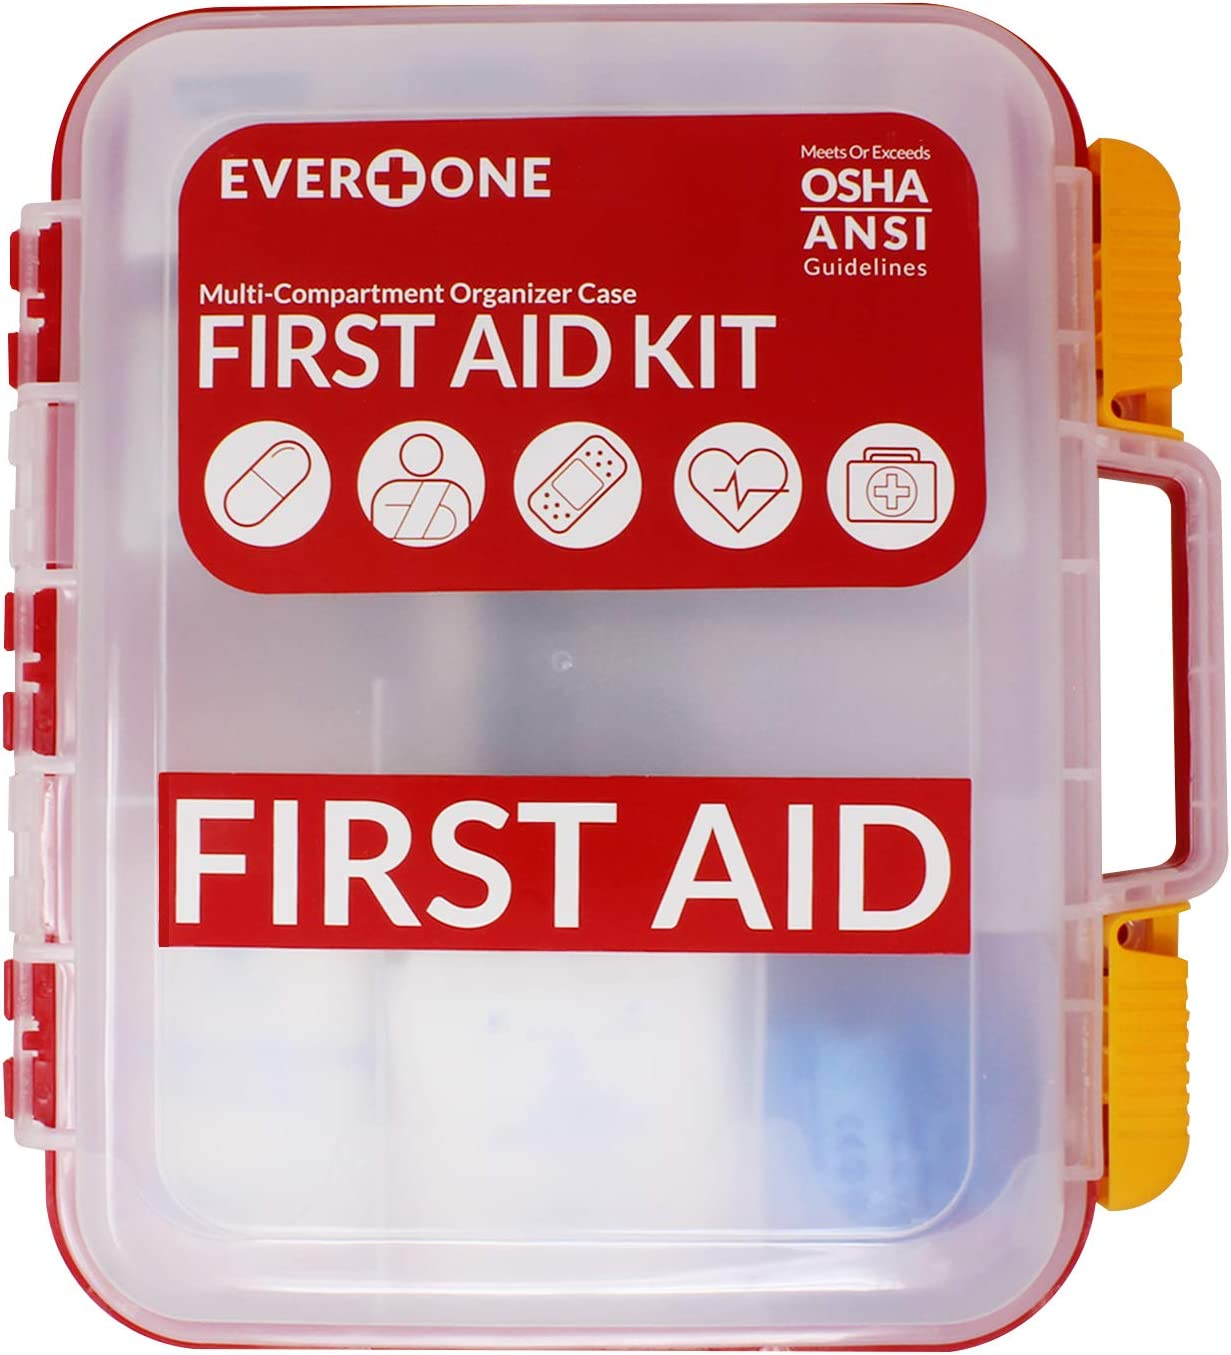 EverOne 354 Piece Hard Case Time sale First Kit OSHA Aid 2021new shipping free shipping ANSI and Exceeds